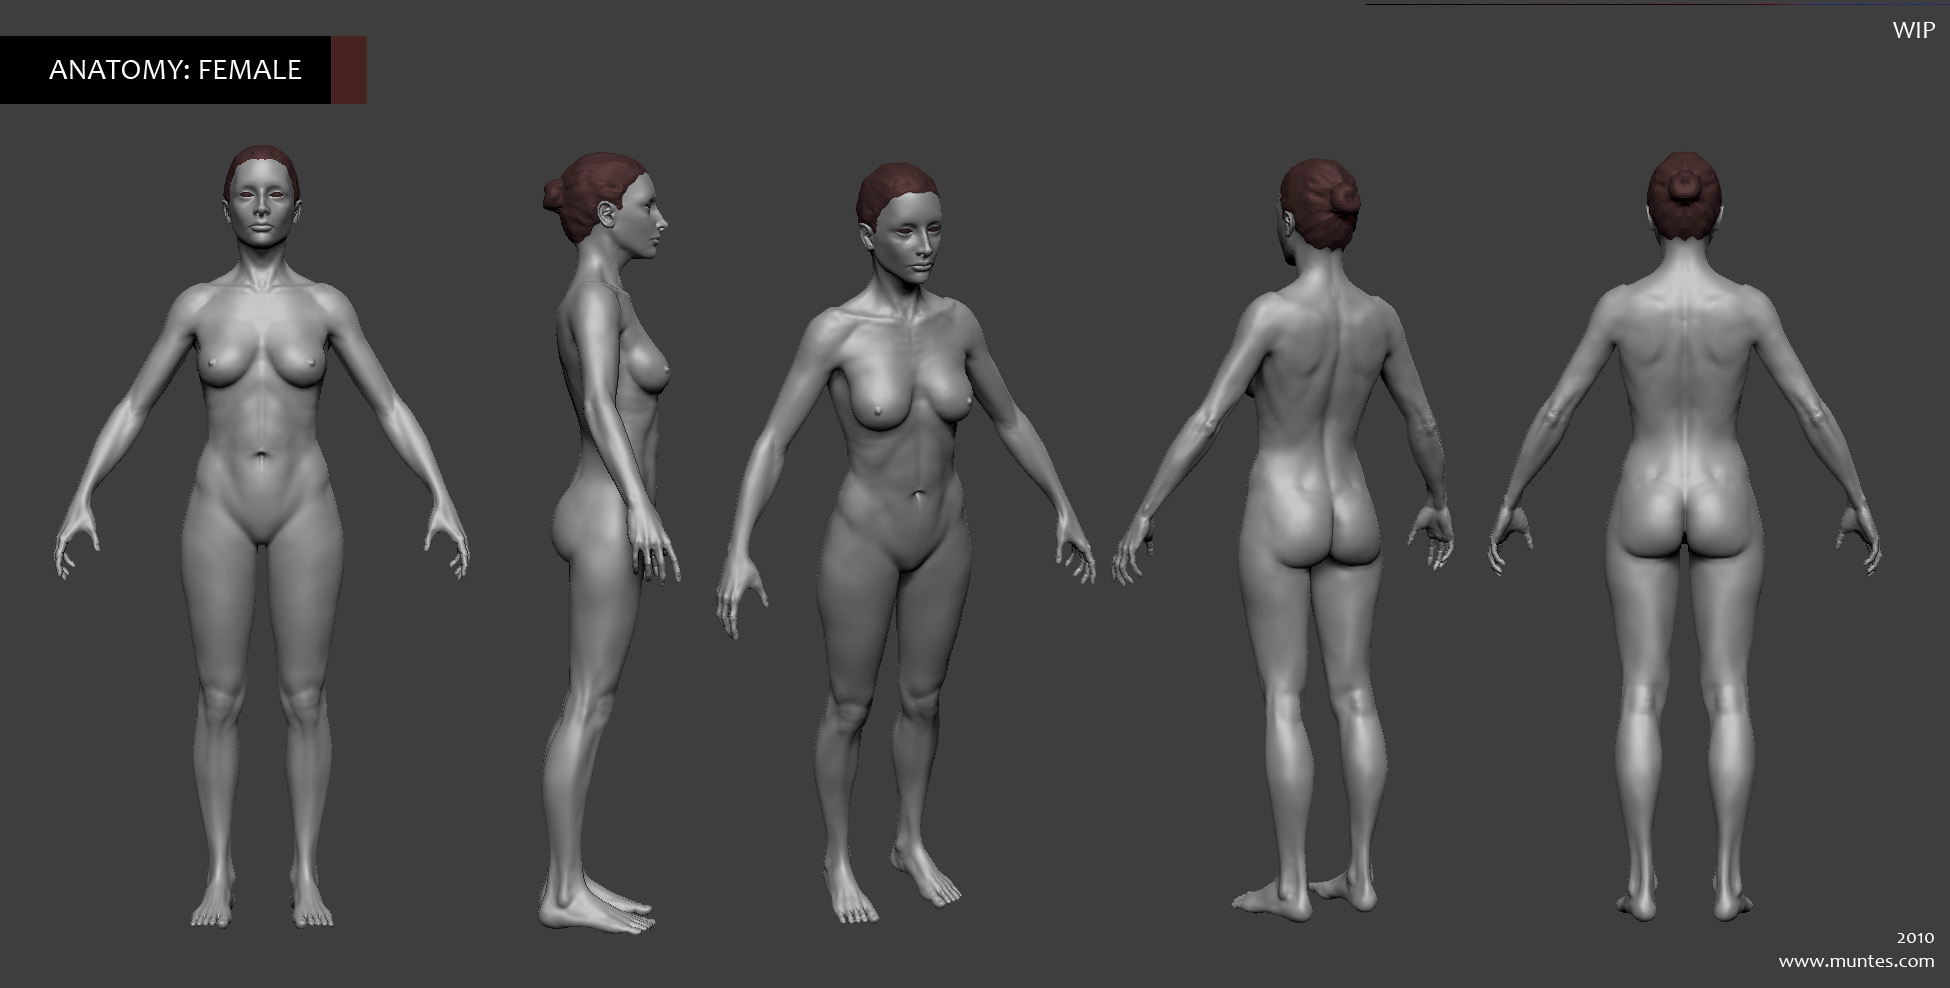 Nude anatomically male and female sims erotic pic